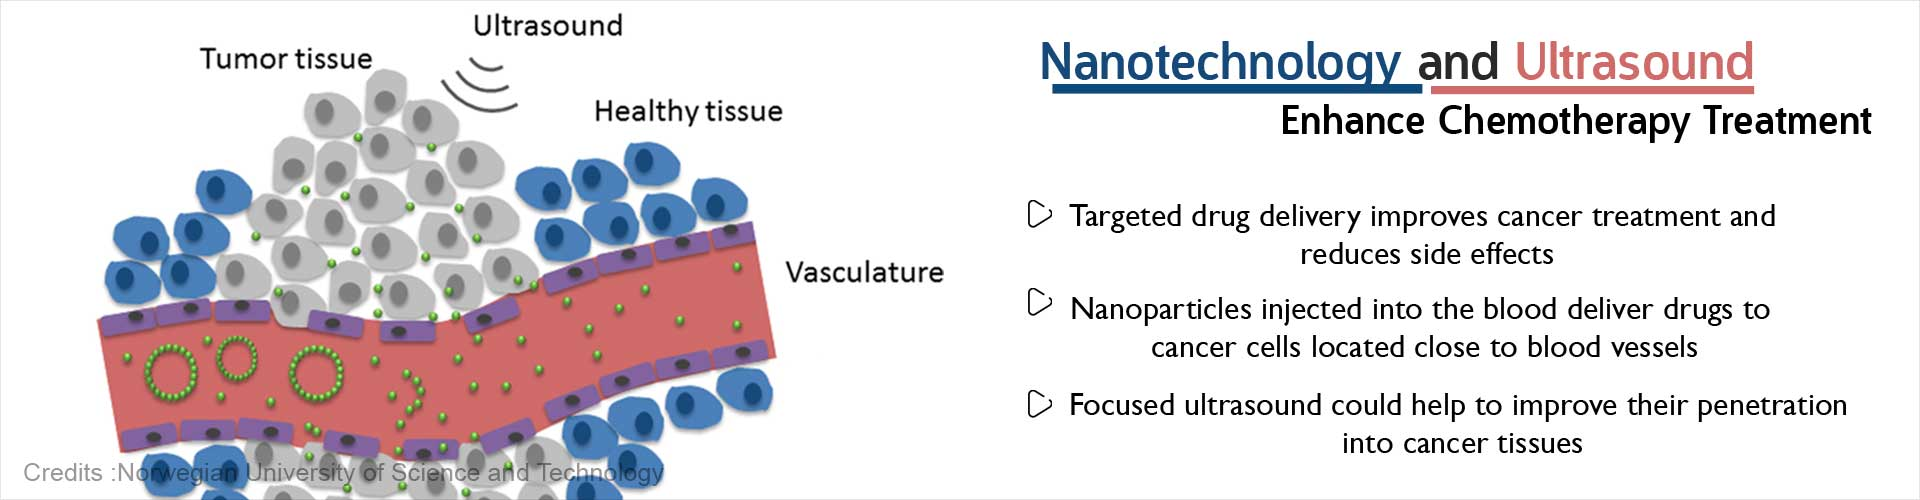 Nanotechnology and Ultrasound Enhance Chemotherapy Treatment